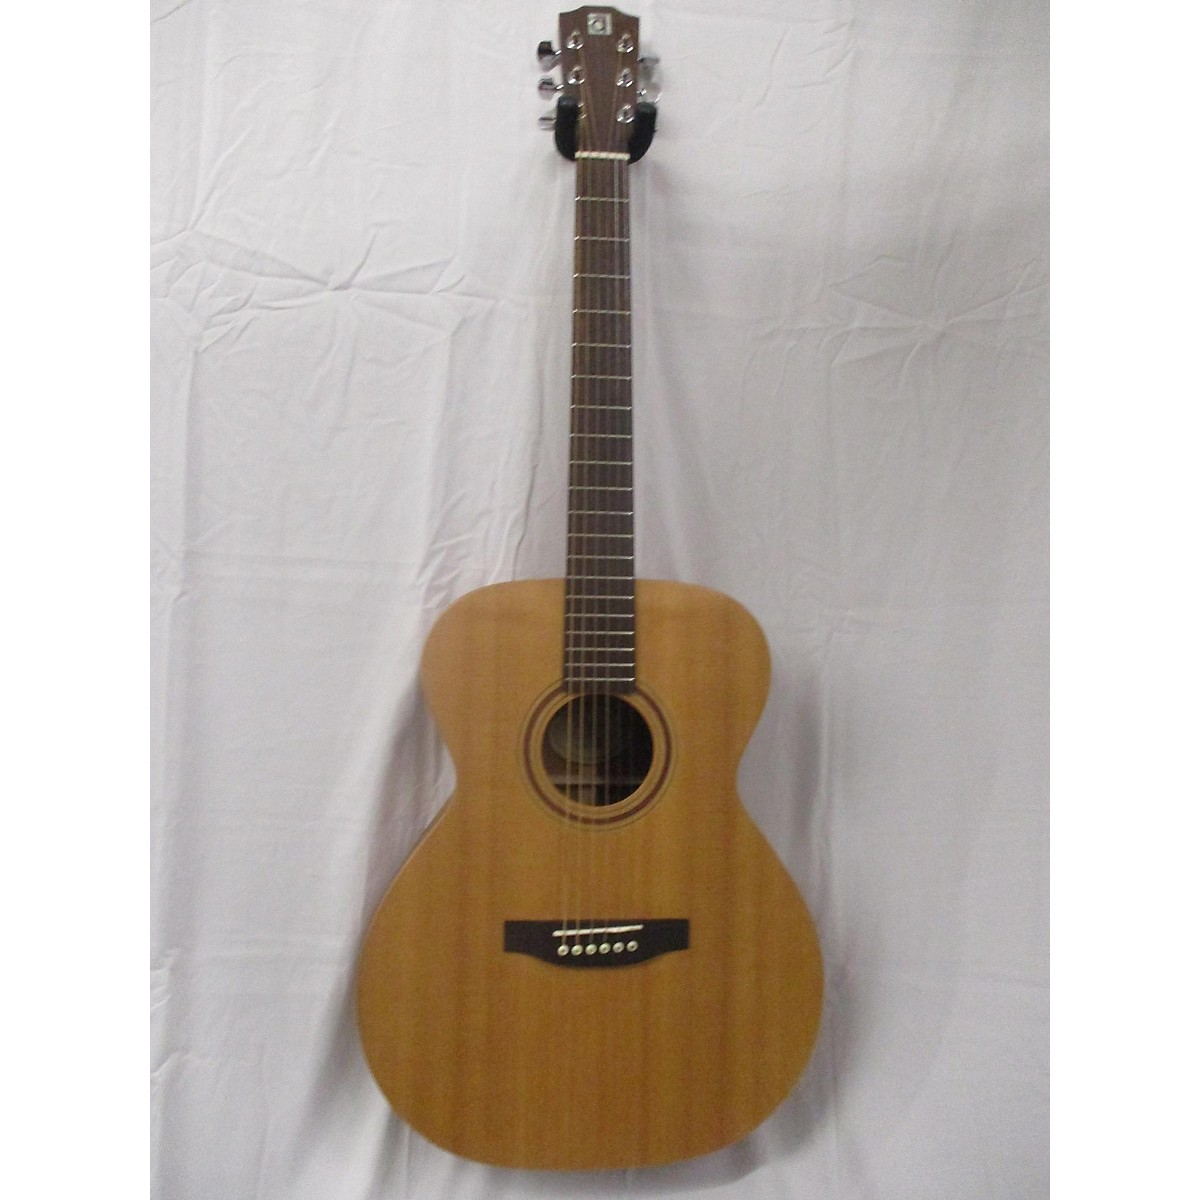 Ayers AS Acoustic Guitar